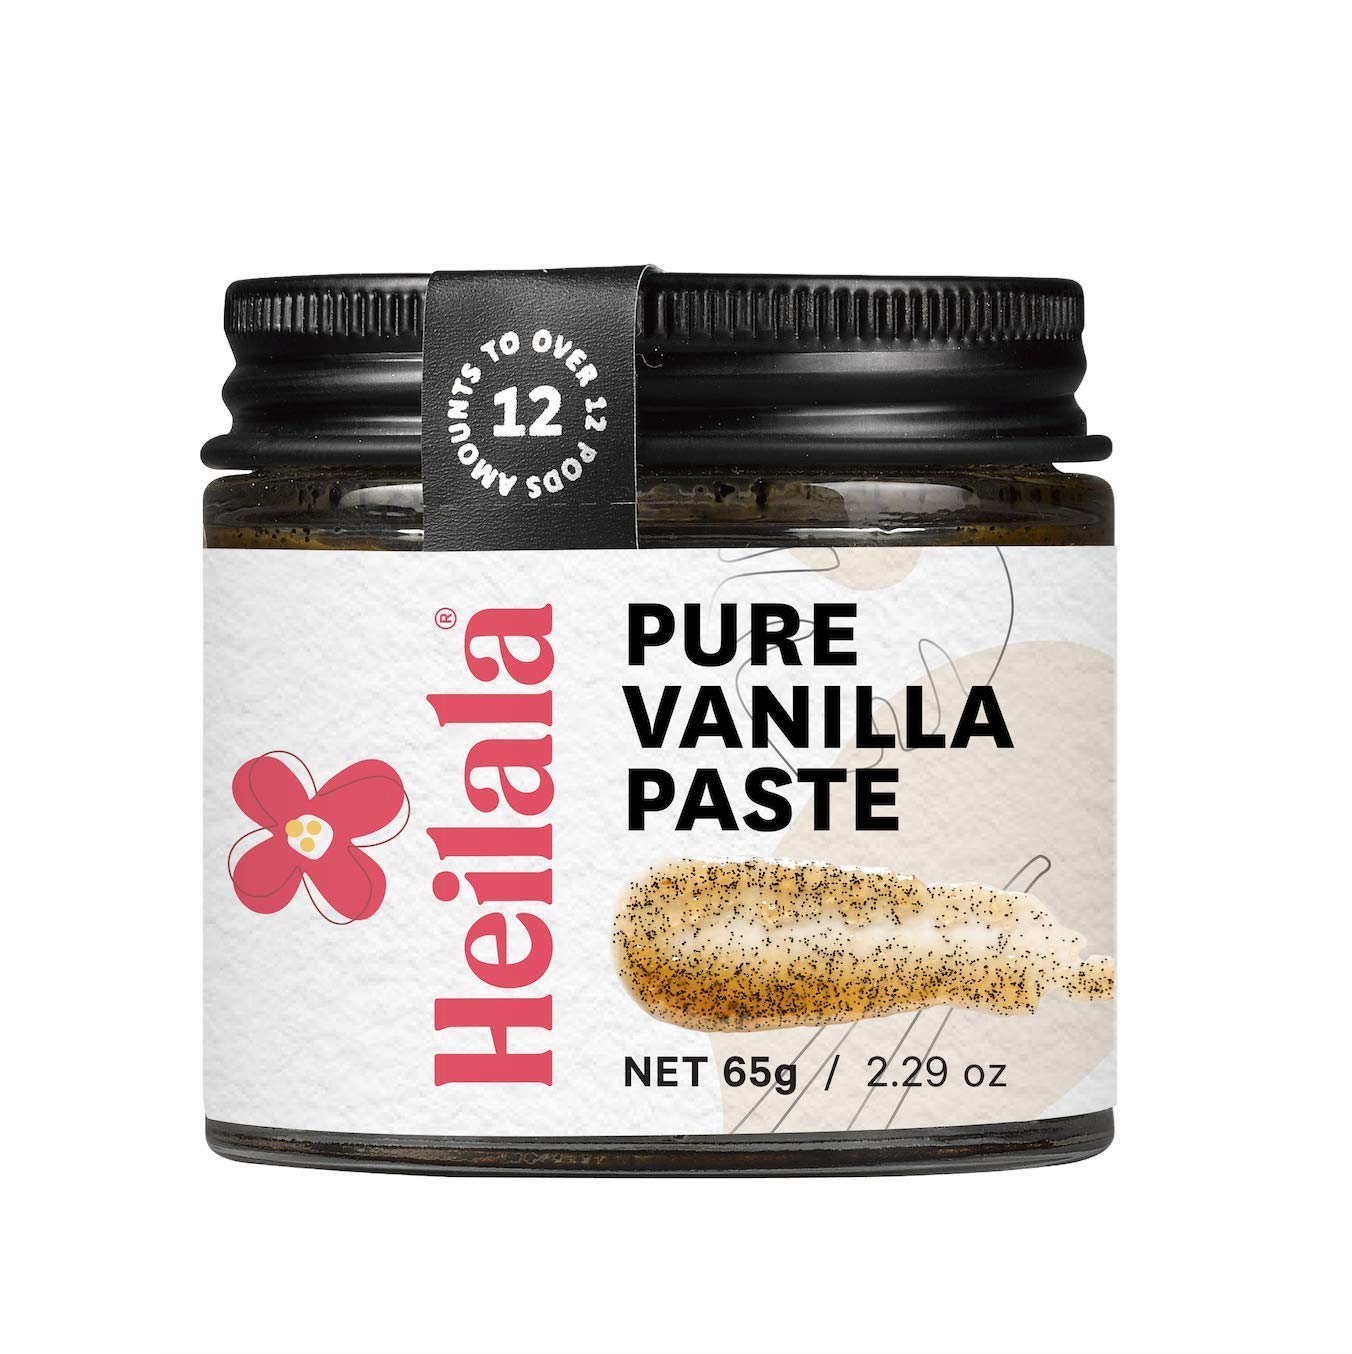 Vanilla Bean Paste for Baking - Heilala Vanilla, the Choice of World's Best Chefs & Bakers, Using Sustainable, Ethically Sourced Vanilla, Hand-Selected from Polynesia, 2.29 oz